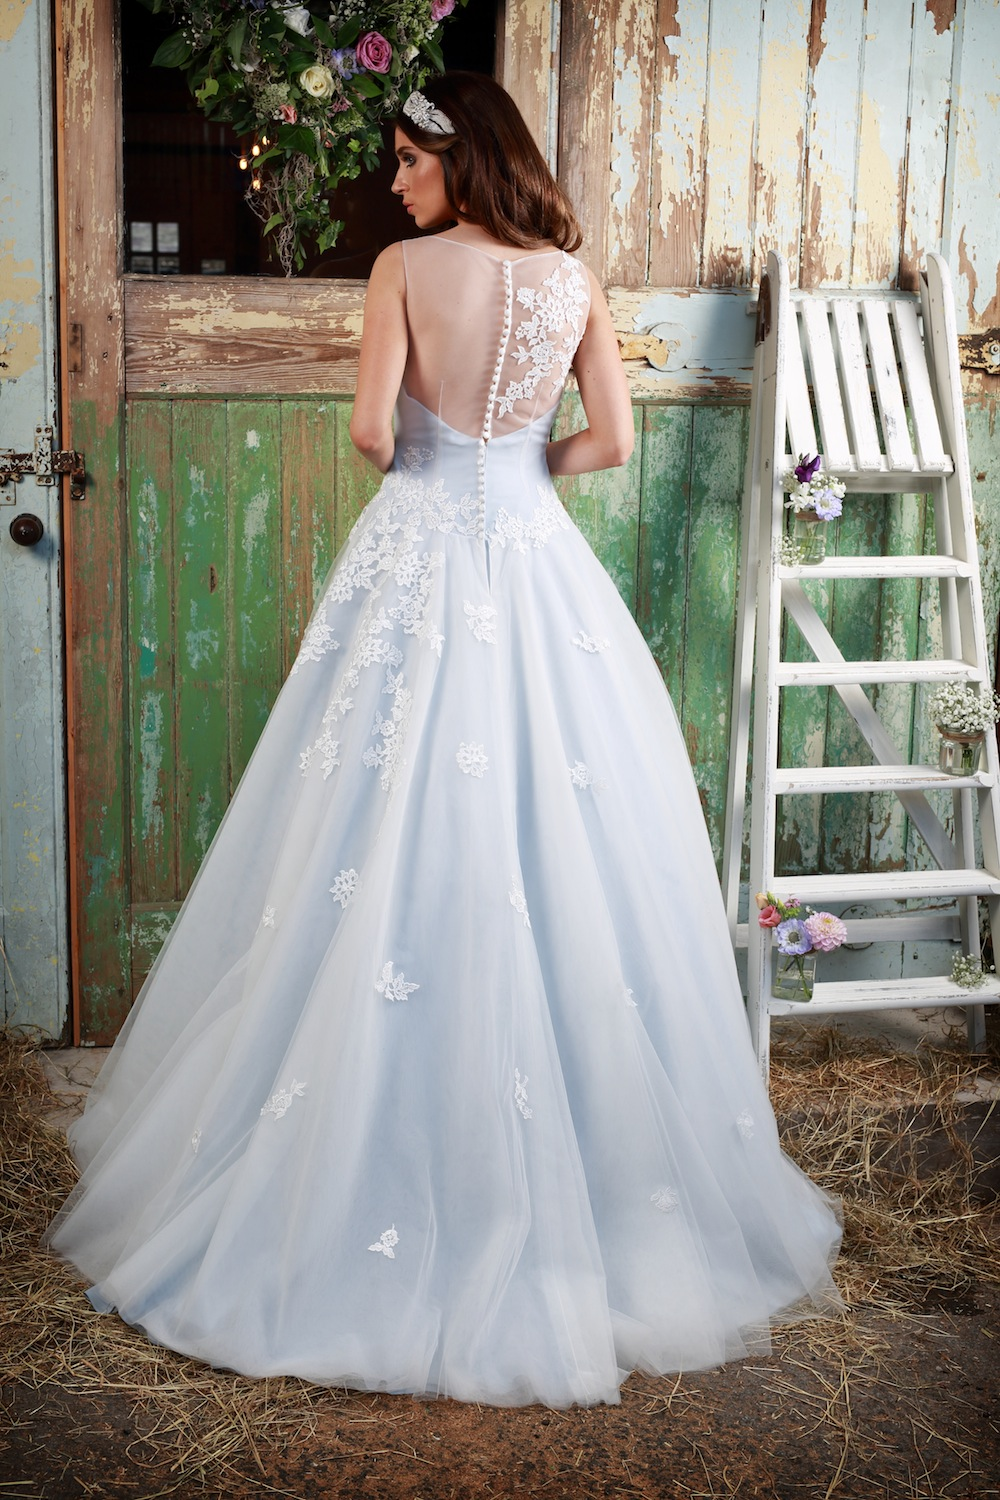 Amanda Wyatt 2016 Wedding Gowns : Aisla – princess gown in silver blue with an ivory lace and tulle overlay